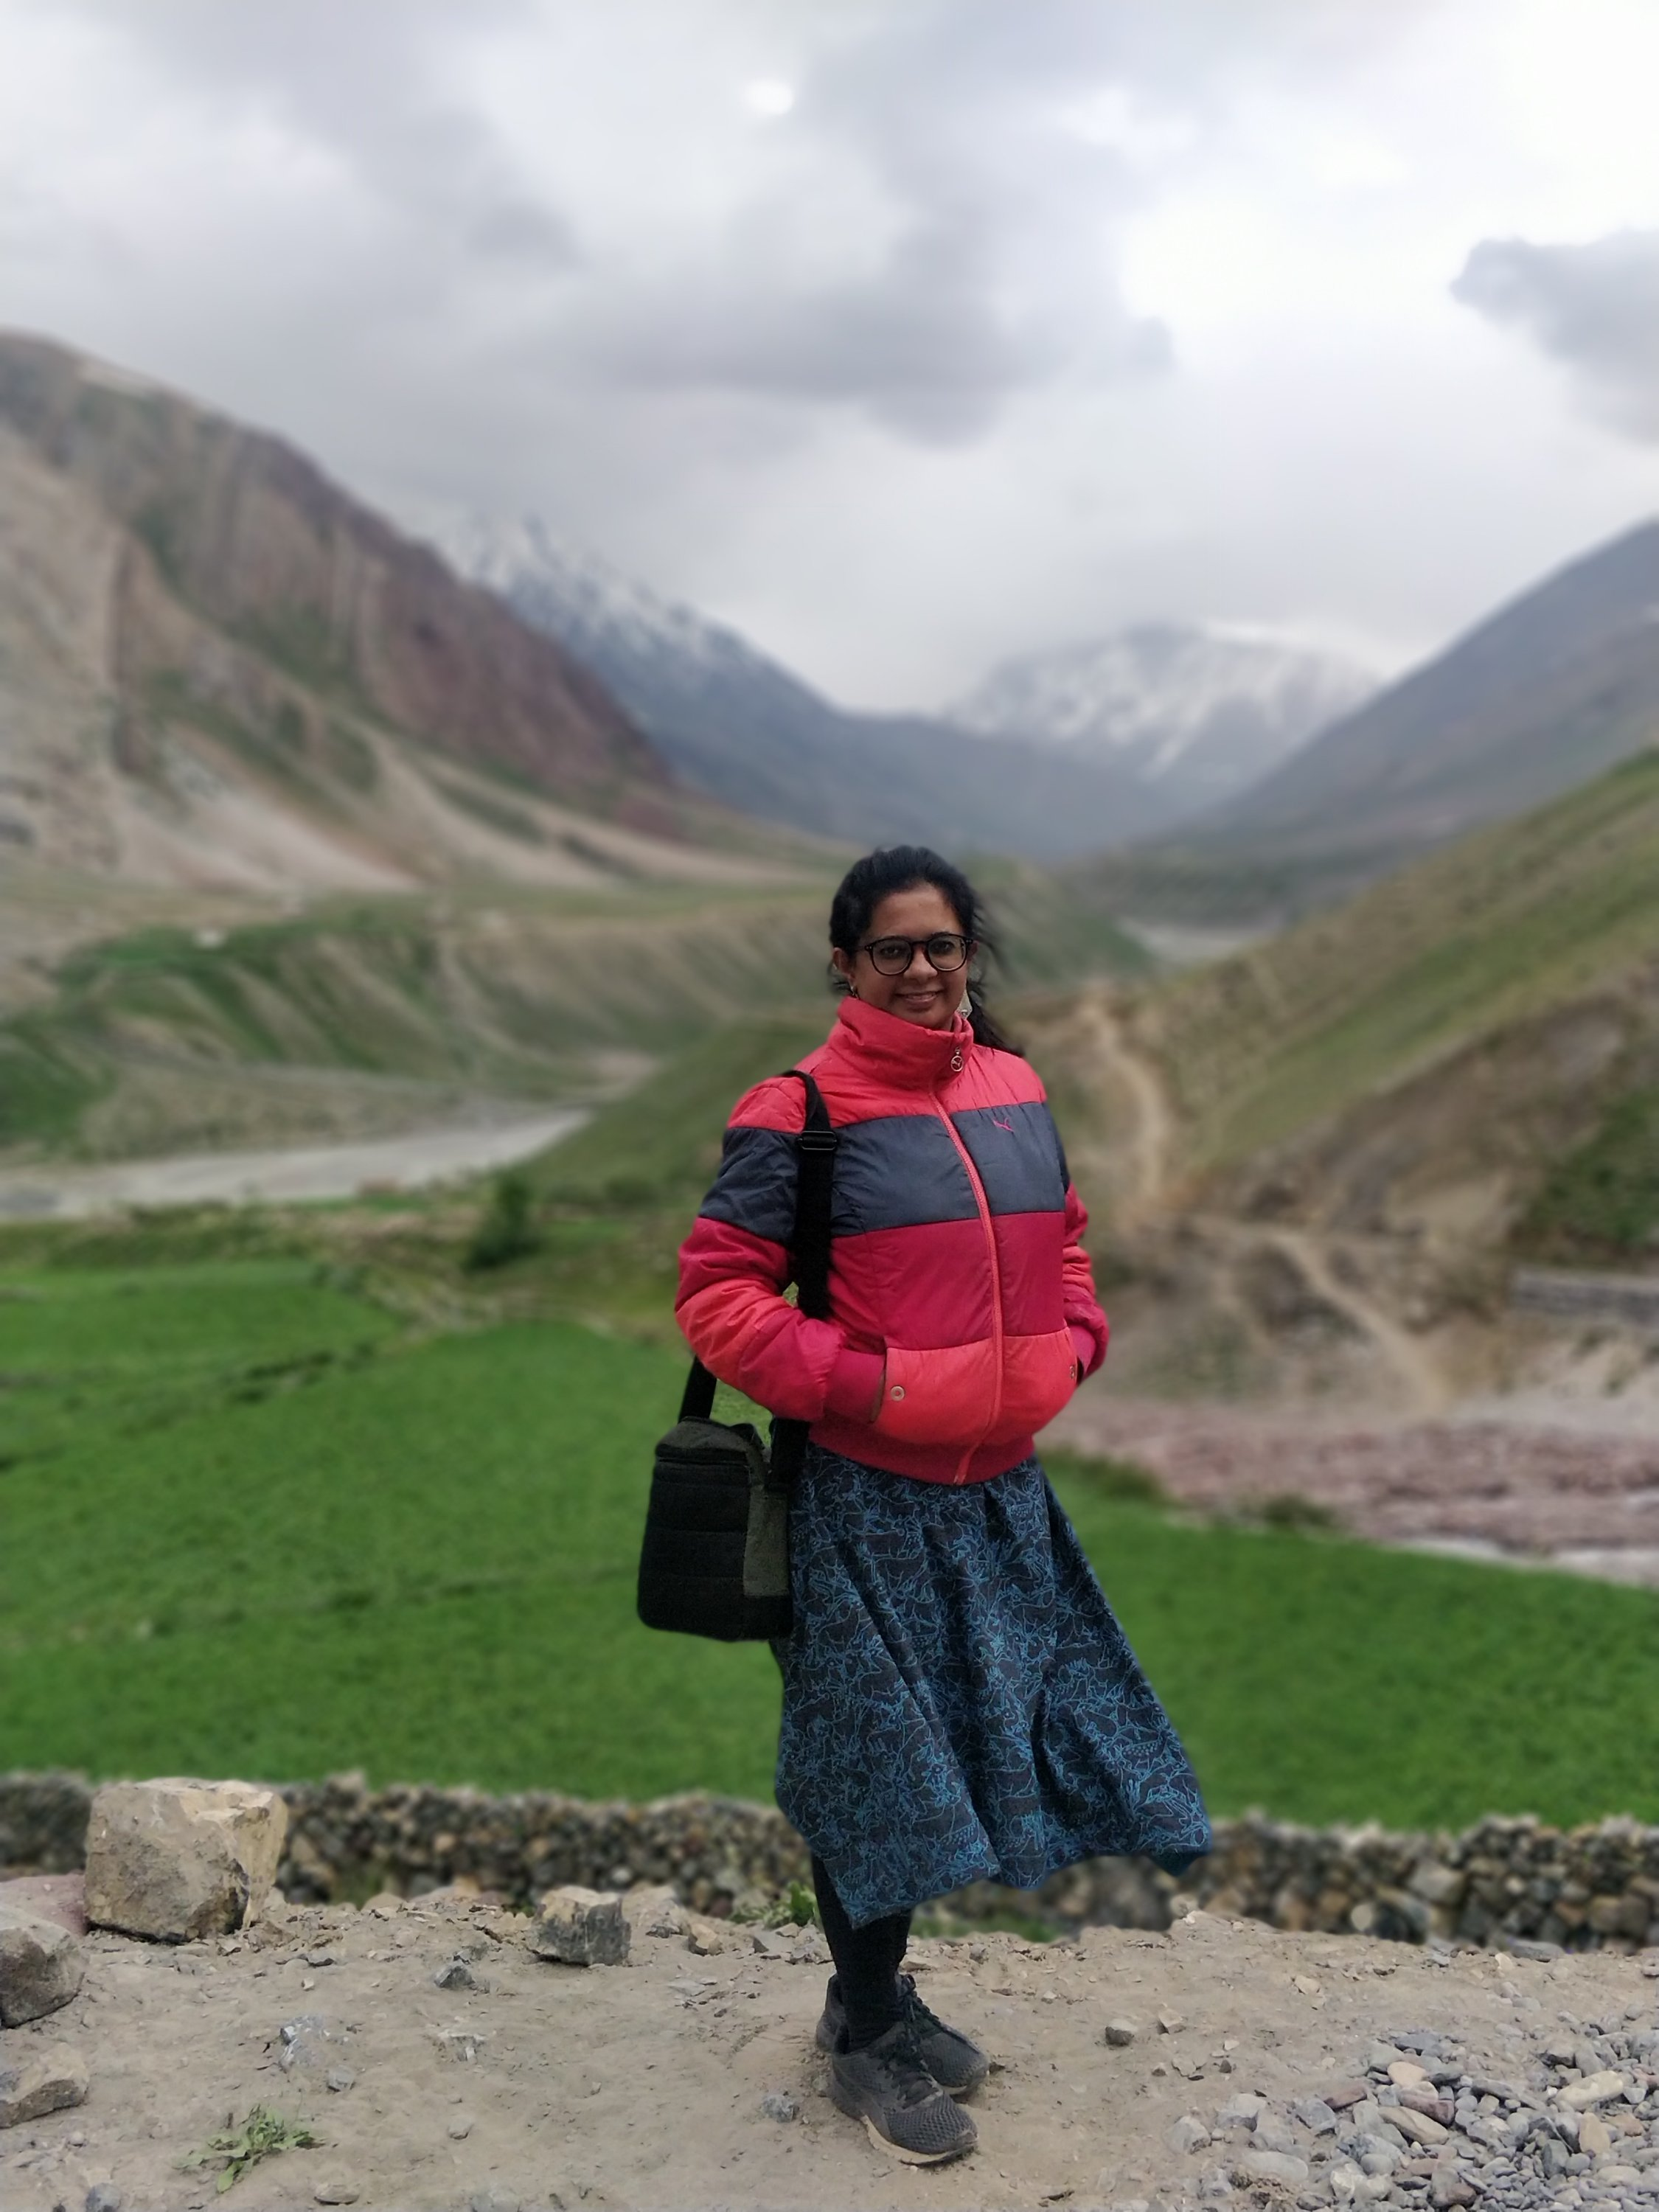 The Himalayas, Lahaul and Spiti